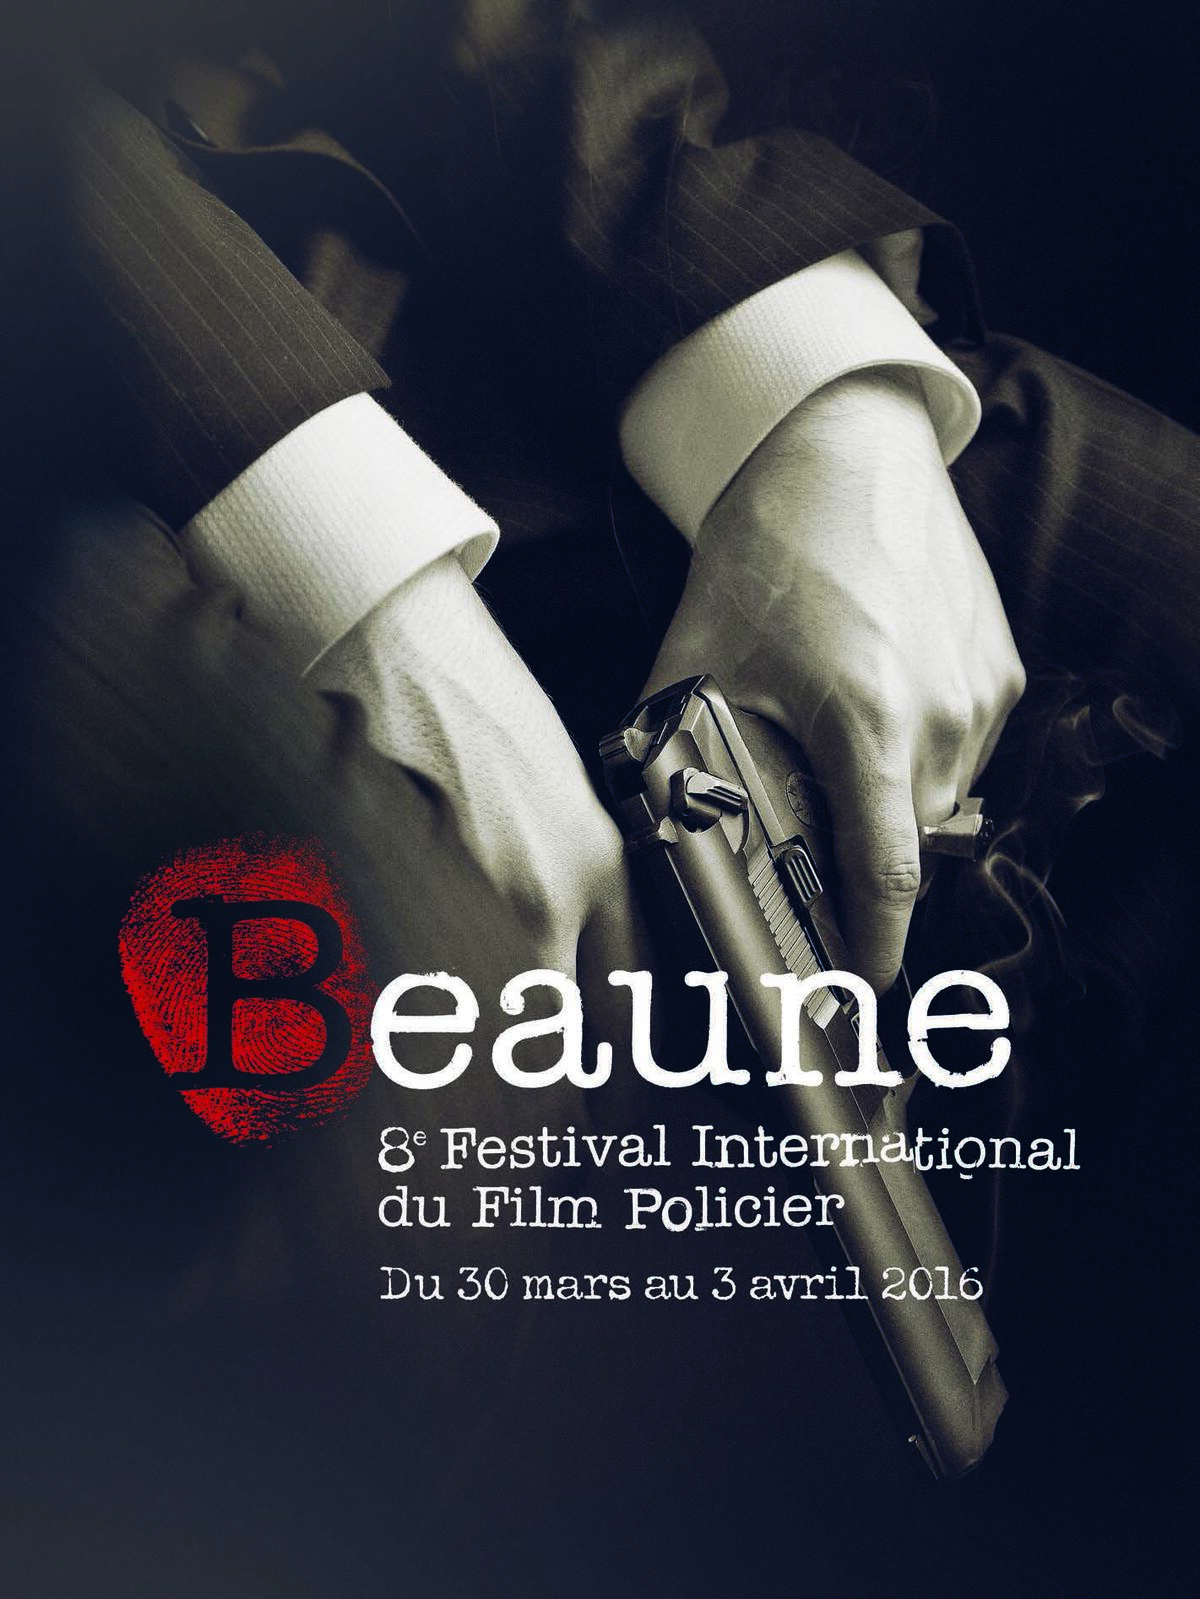 Beaune International Thriller Film Festival | The Official Beaune